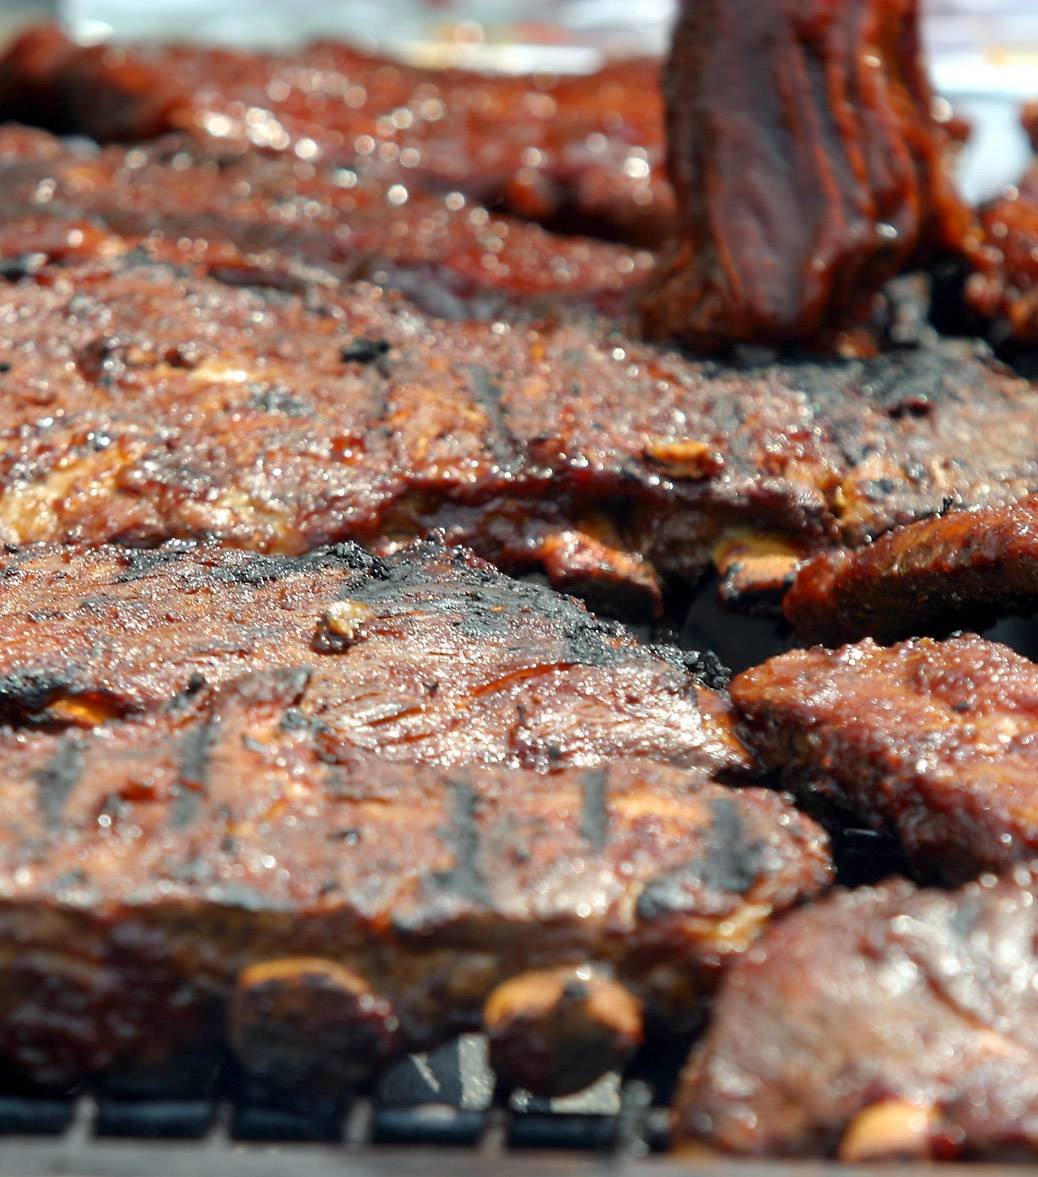 Barbecue, beer, heat … all those summertime staples can add up to bad breath.